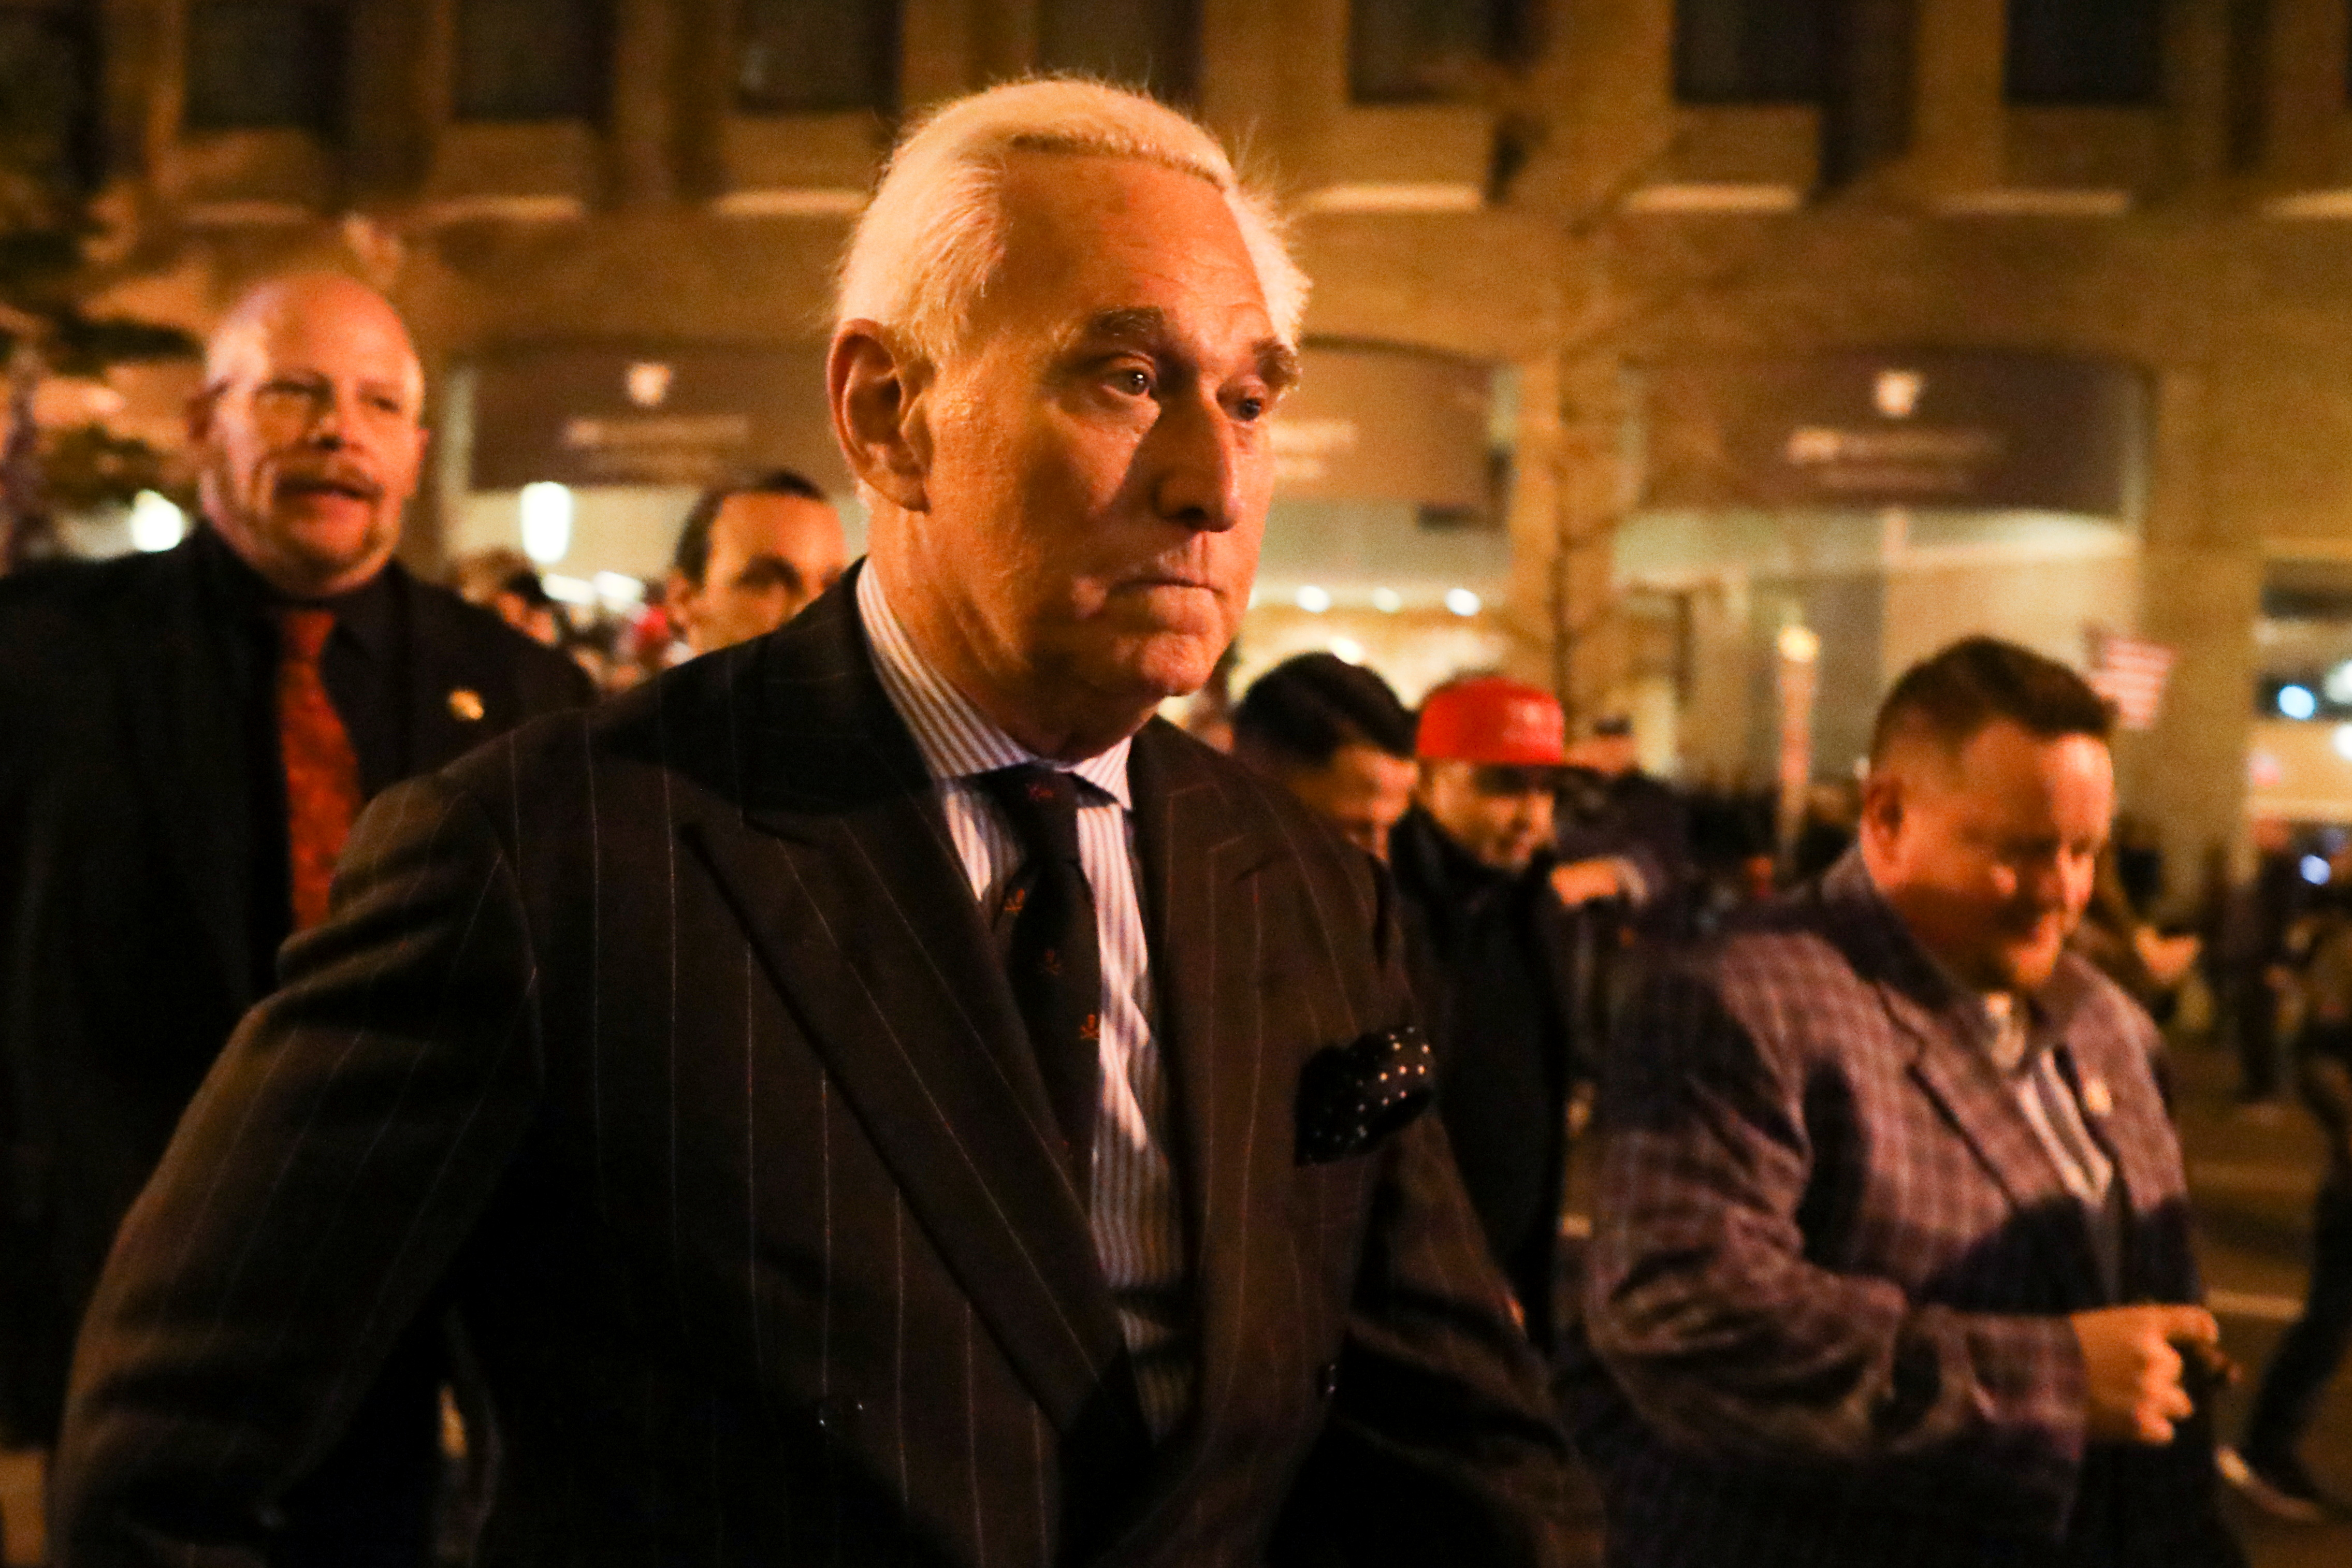 Roger Stone, a longtime friend and adviser of U.S. President Donald Trump, walks as supporters of Trump and members of the far-right Proud Boys march the night before rallies to protest the U.S. presidential election results, in Washington, D.C., U.S., December 11, 2020. REUTERS/Jim Urquhart